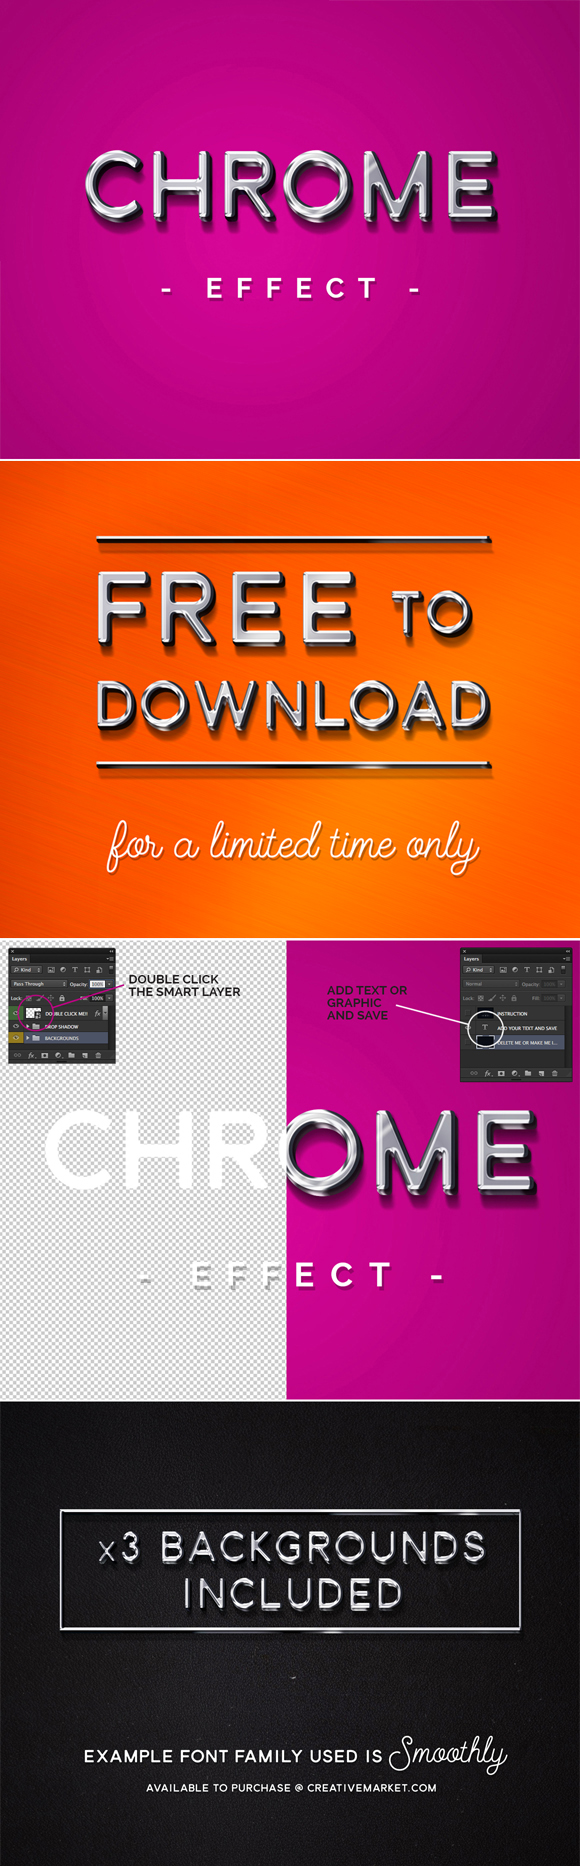 Chrome_download_information.jpg